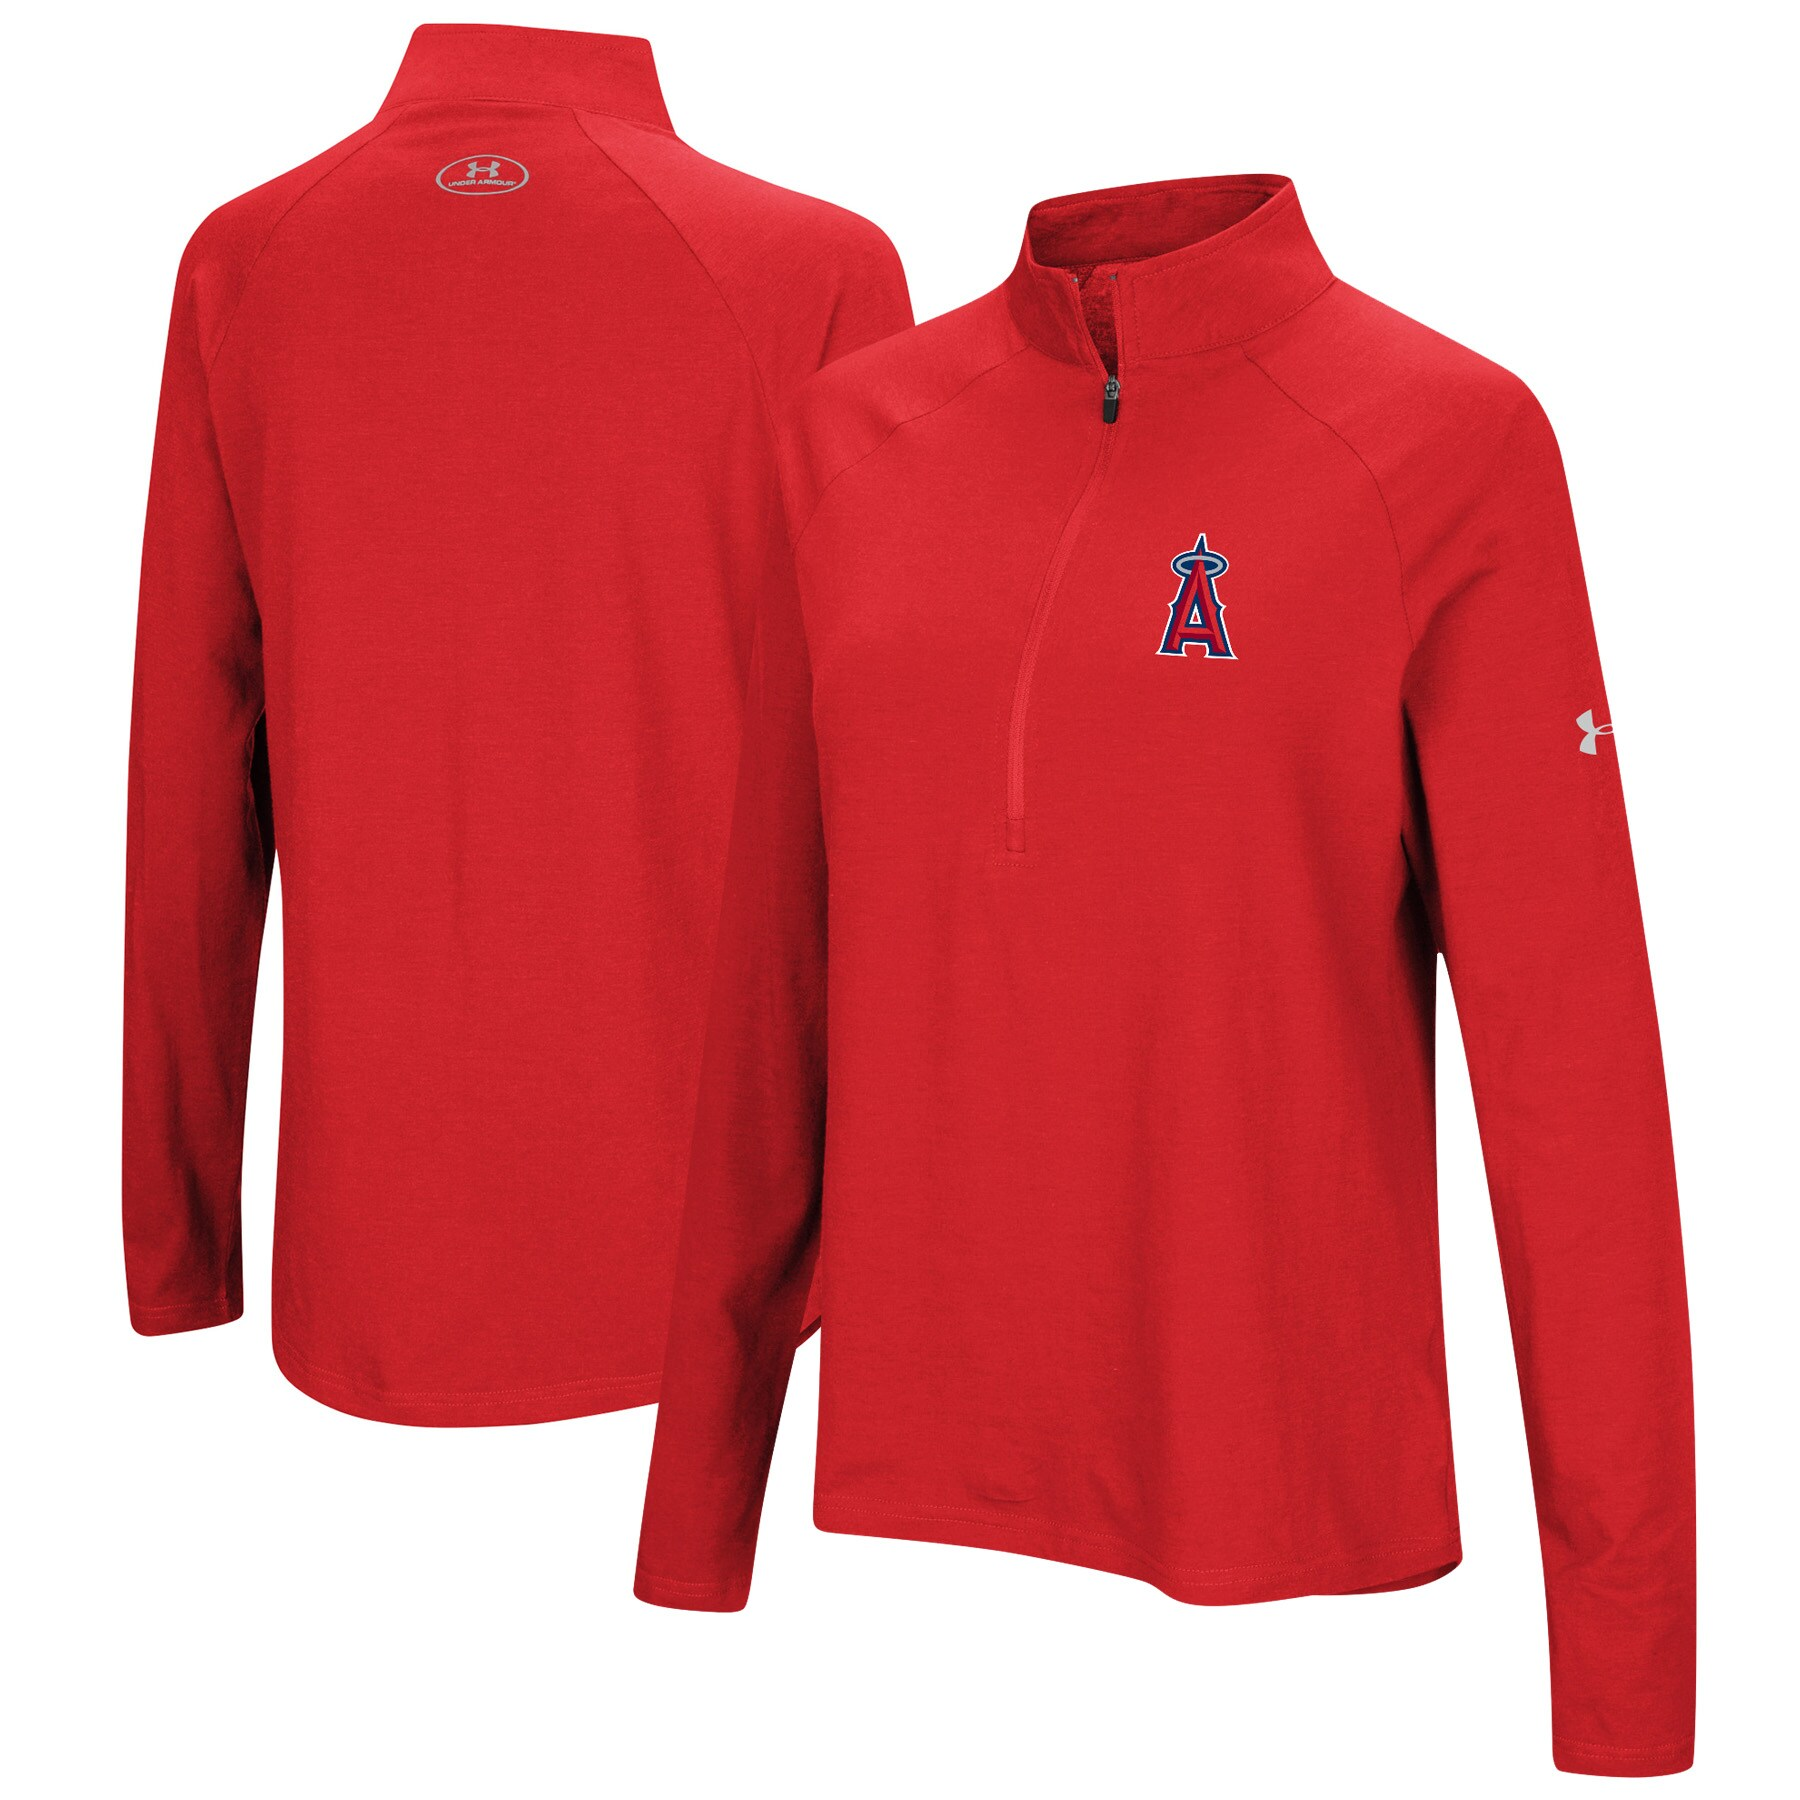 Los Angeles Angels Under Armour Women's Passion Performance Tri-Blend Raglan Half-Zip Pullover Jacket - Red